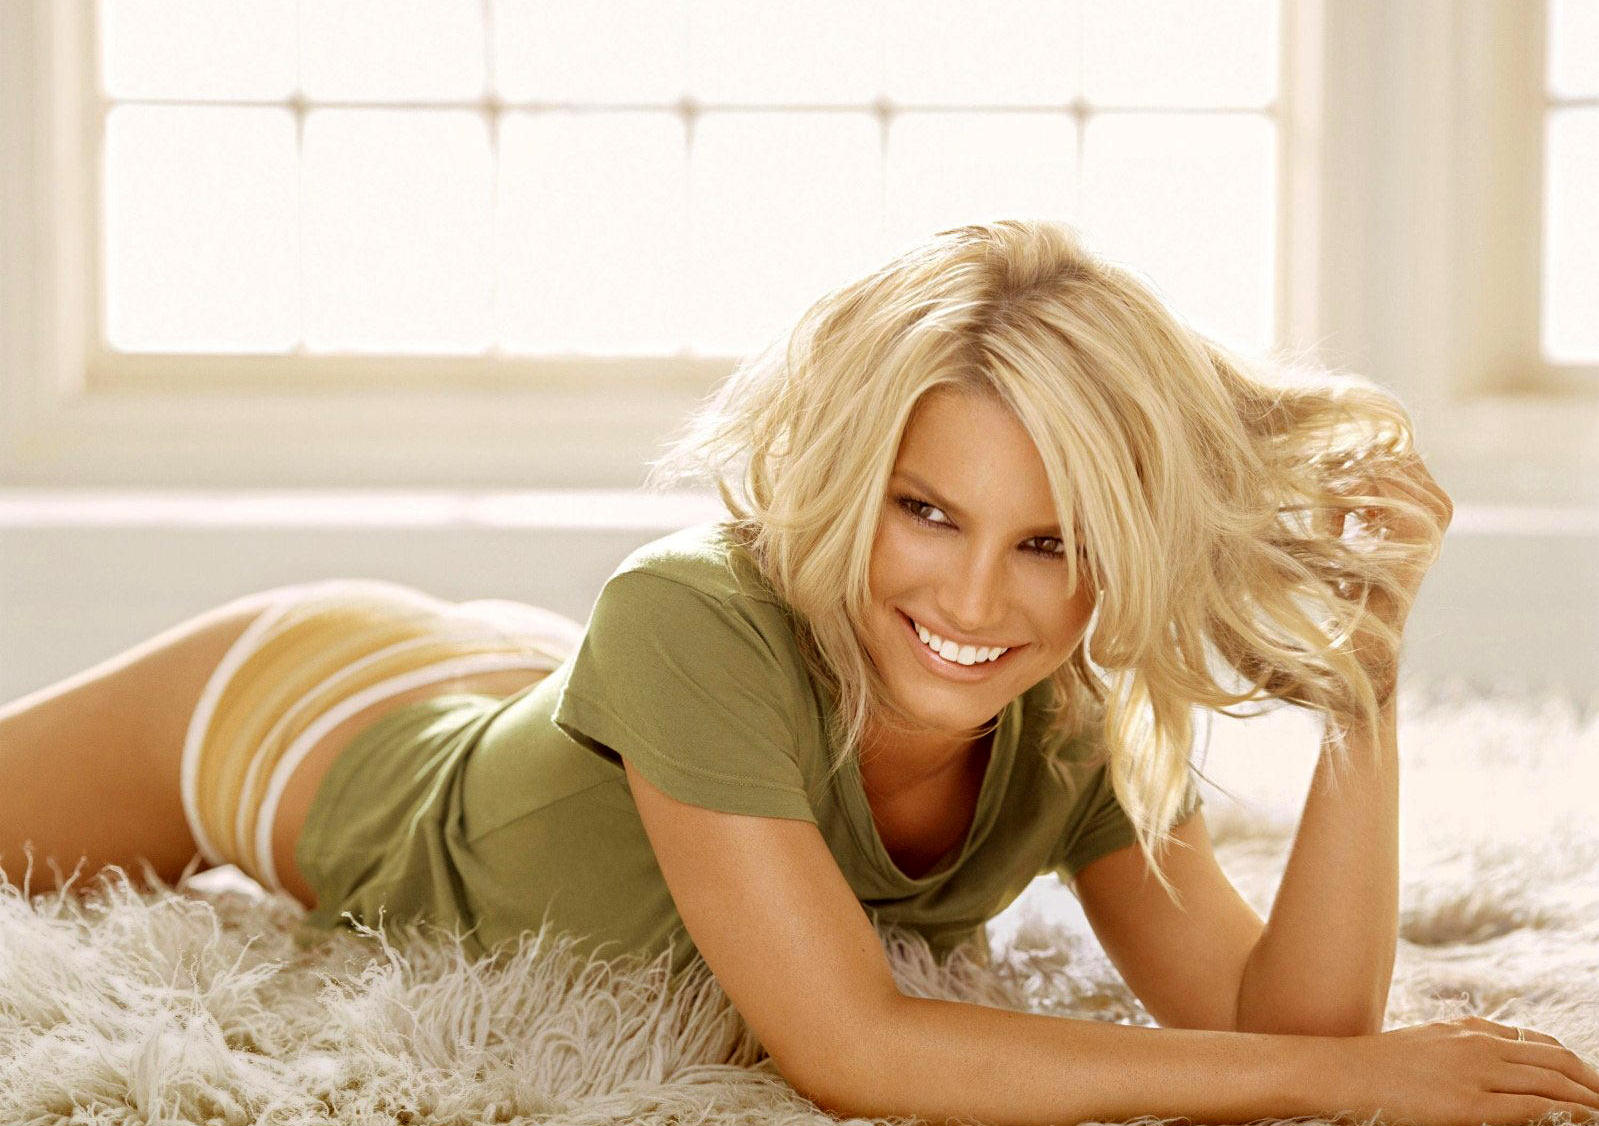 Jessica Simpson sexy gallery Hot